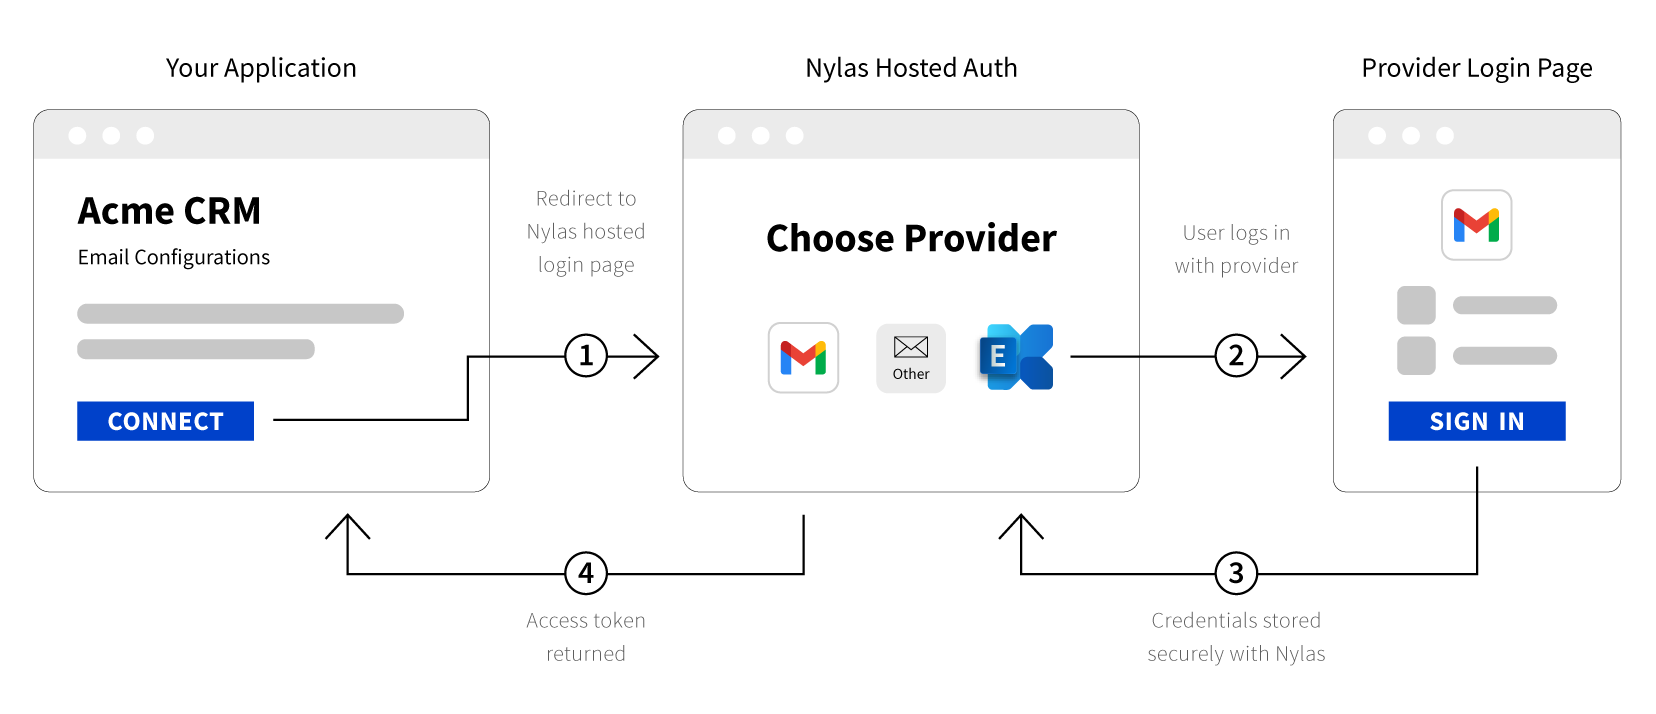 Illustration of the Nylas Hosted Auth service that integrates with 100% of email, calendar, and contacts providers, including Google